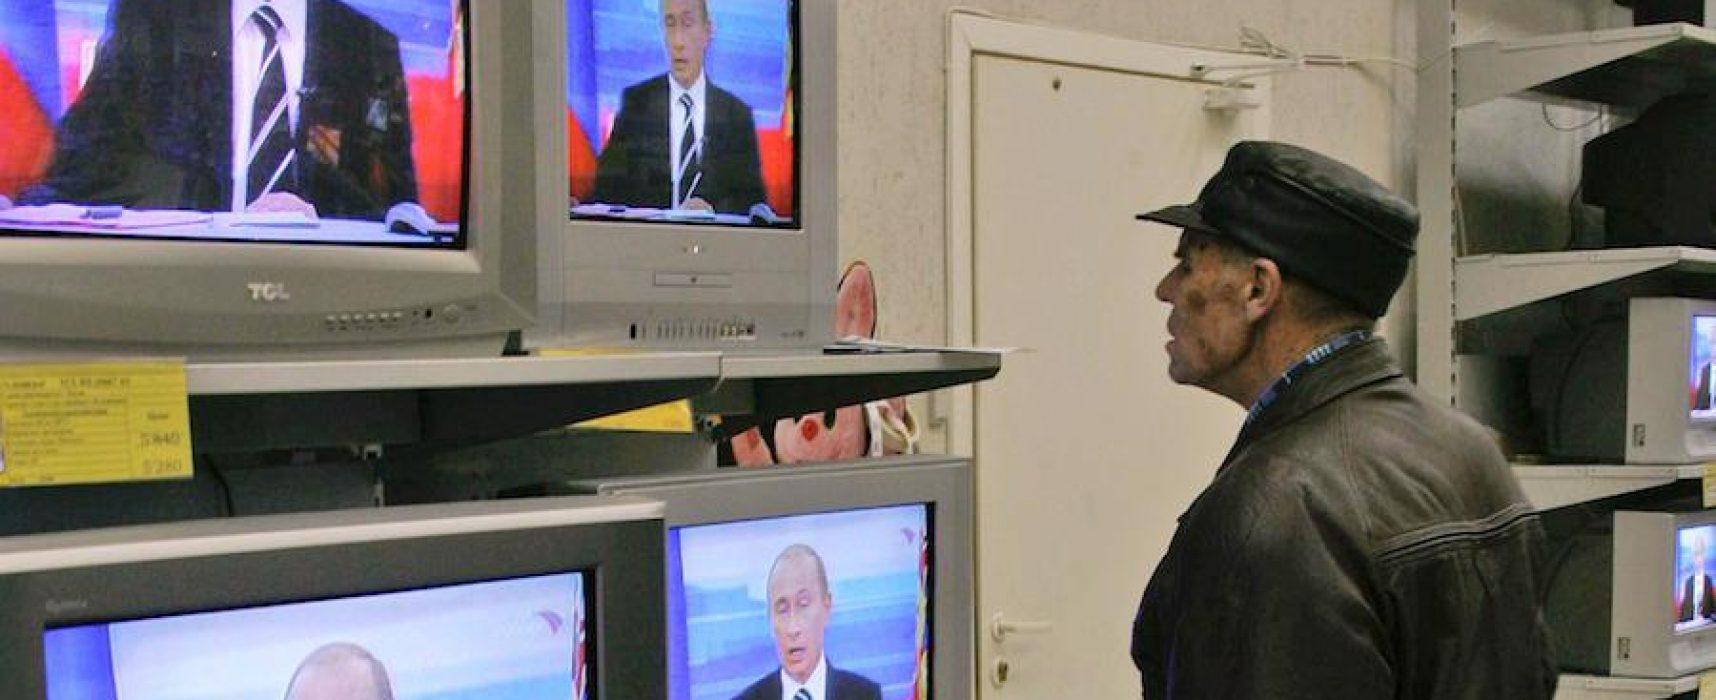 Russians Increasingly Skeptical of 'False' and 'Biased' News